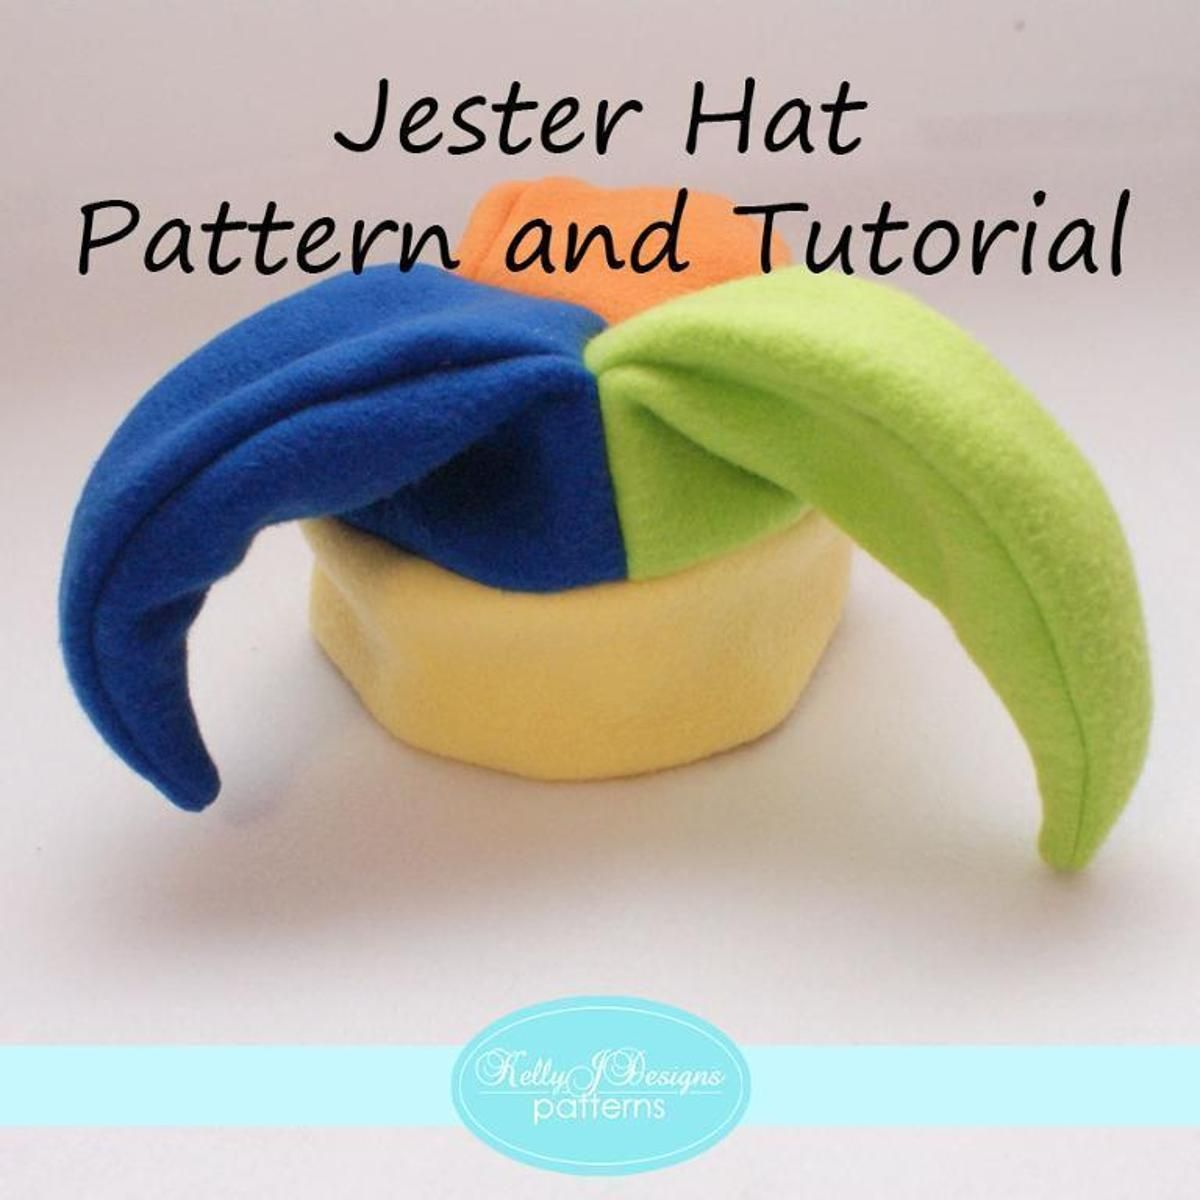 abadfde1e85 Jester Hat Pattern and Tutorial